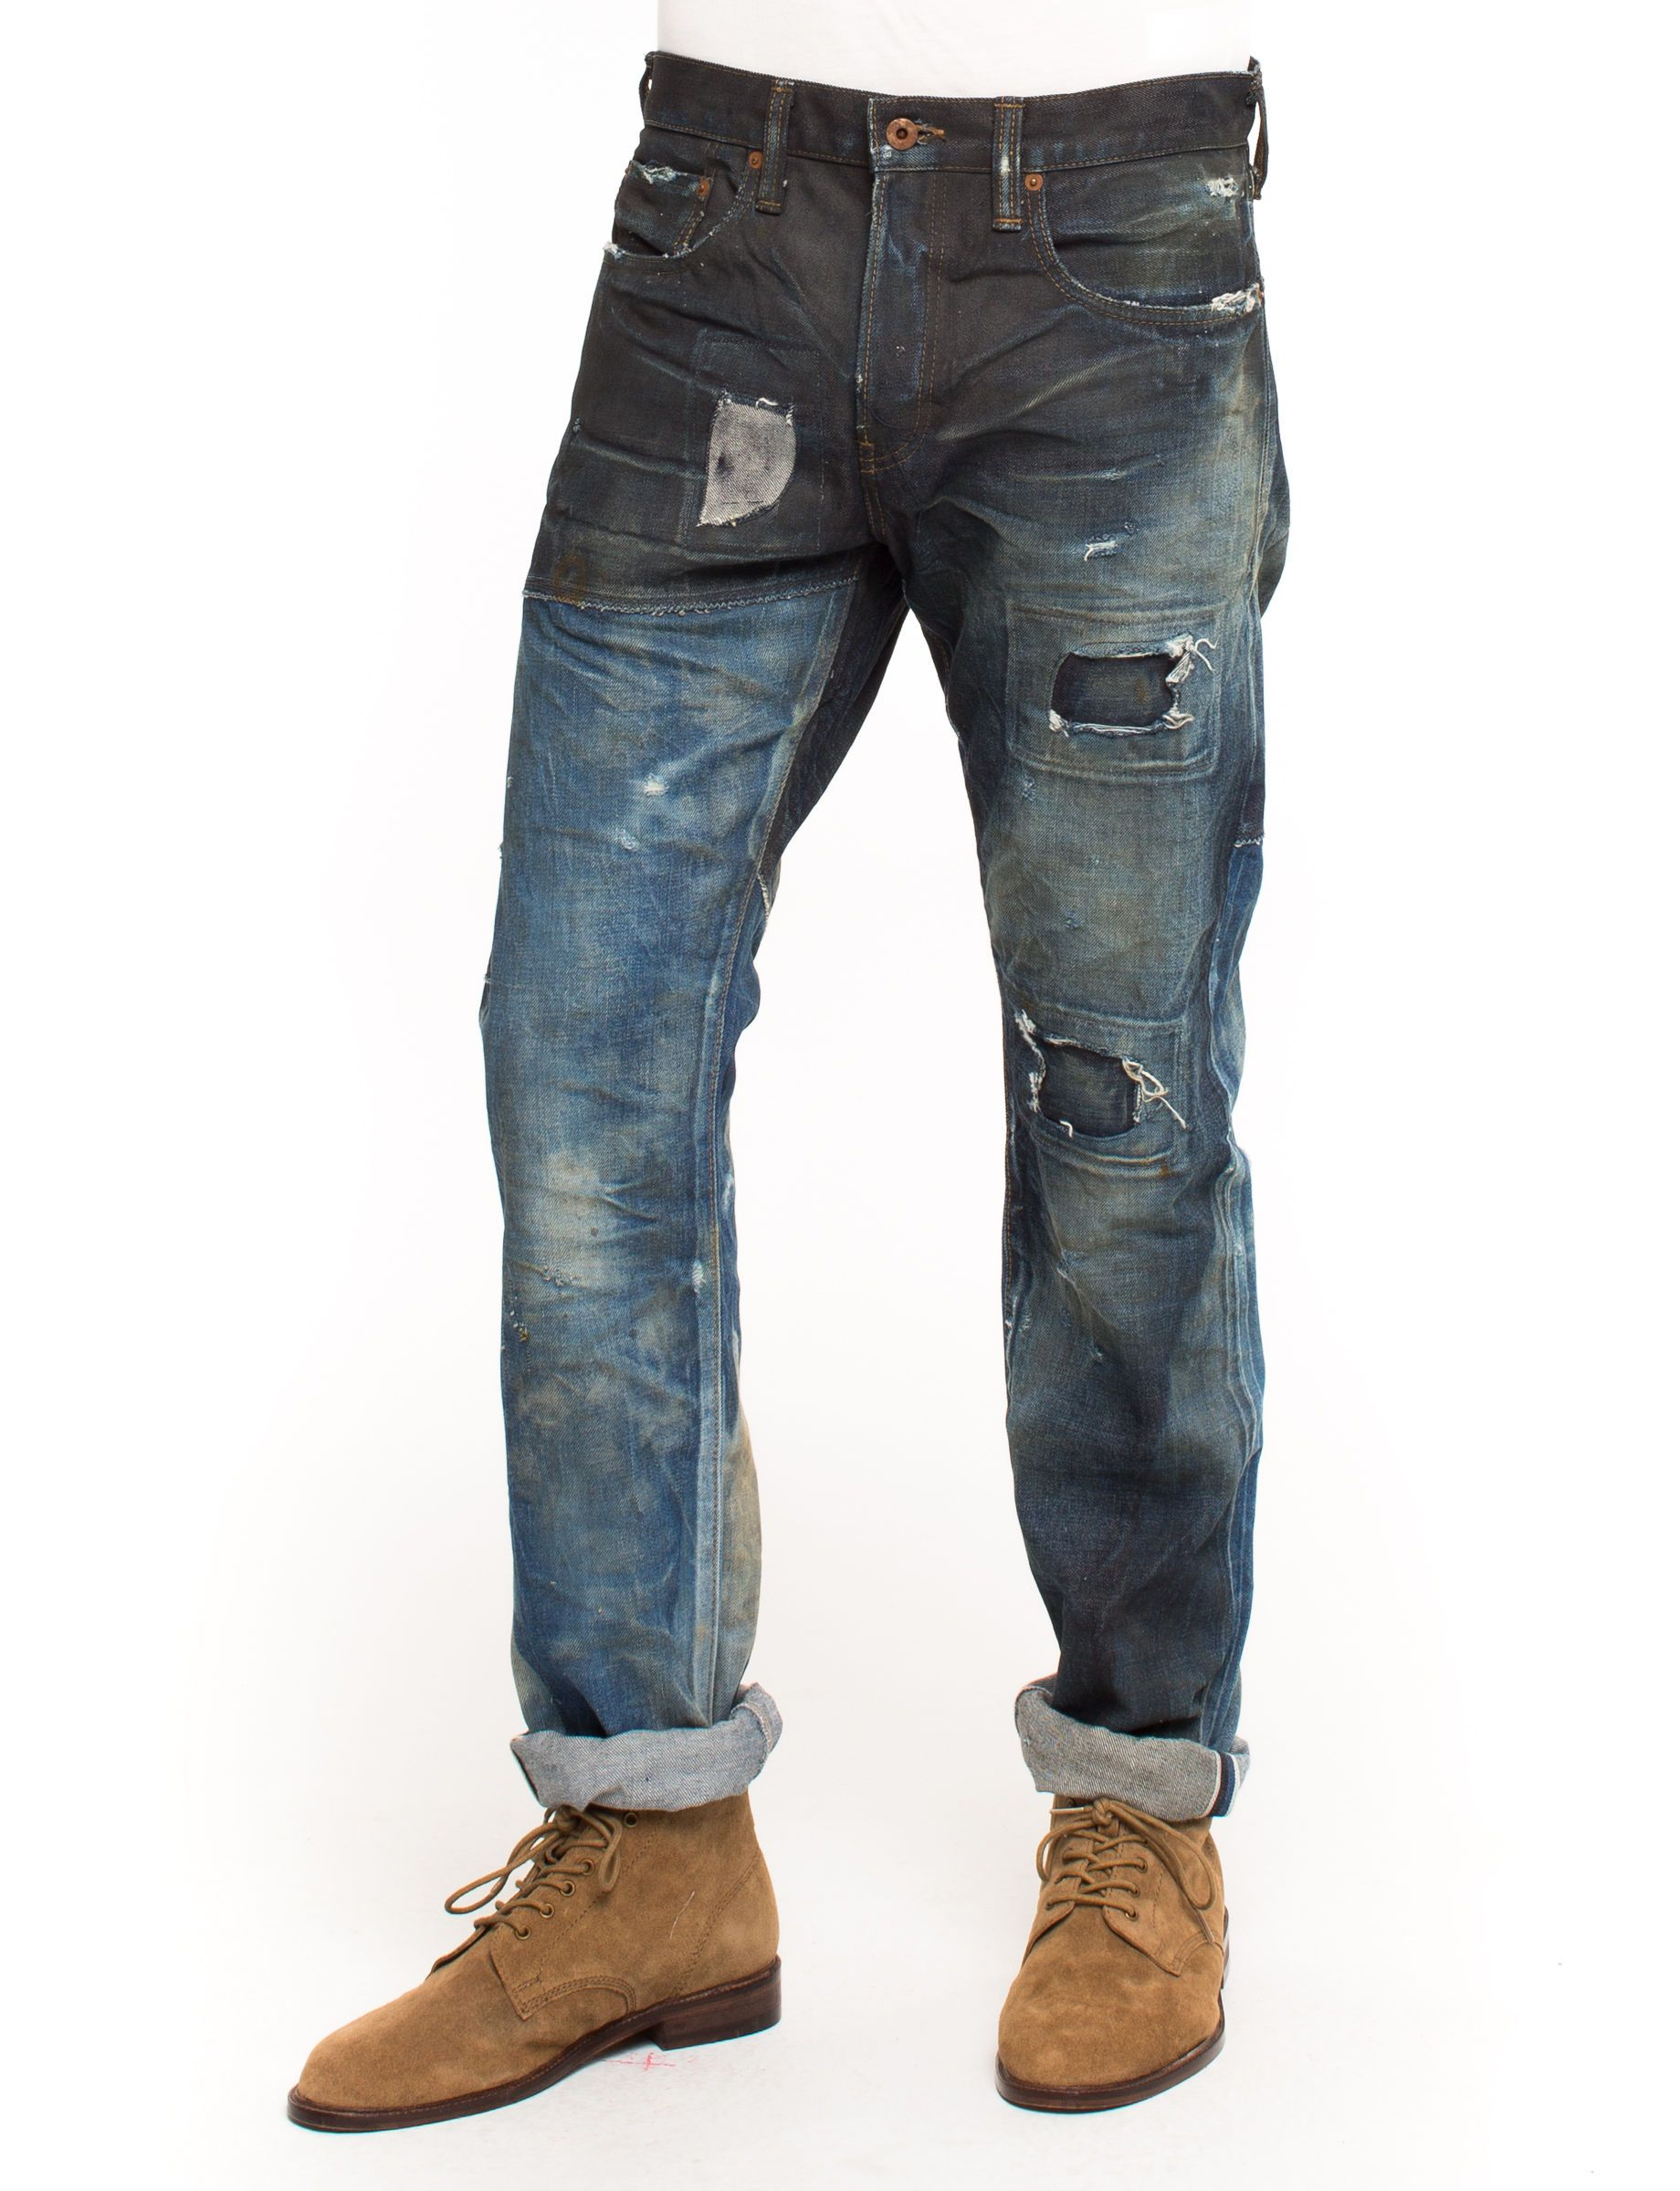 It's all about the details with the PRPS Noir Pana Jean made from 13.5 oz  cotton